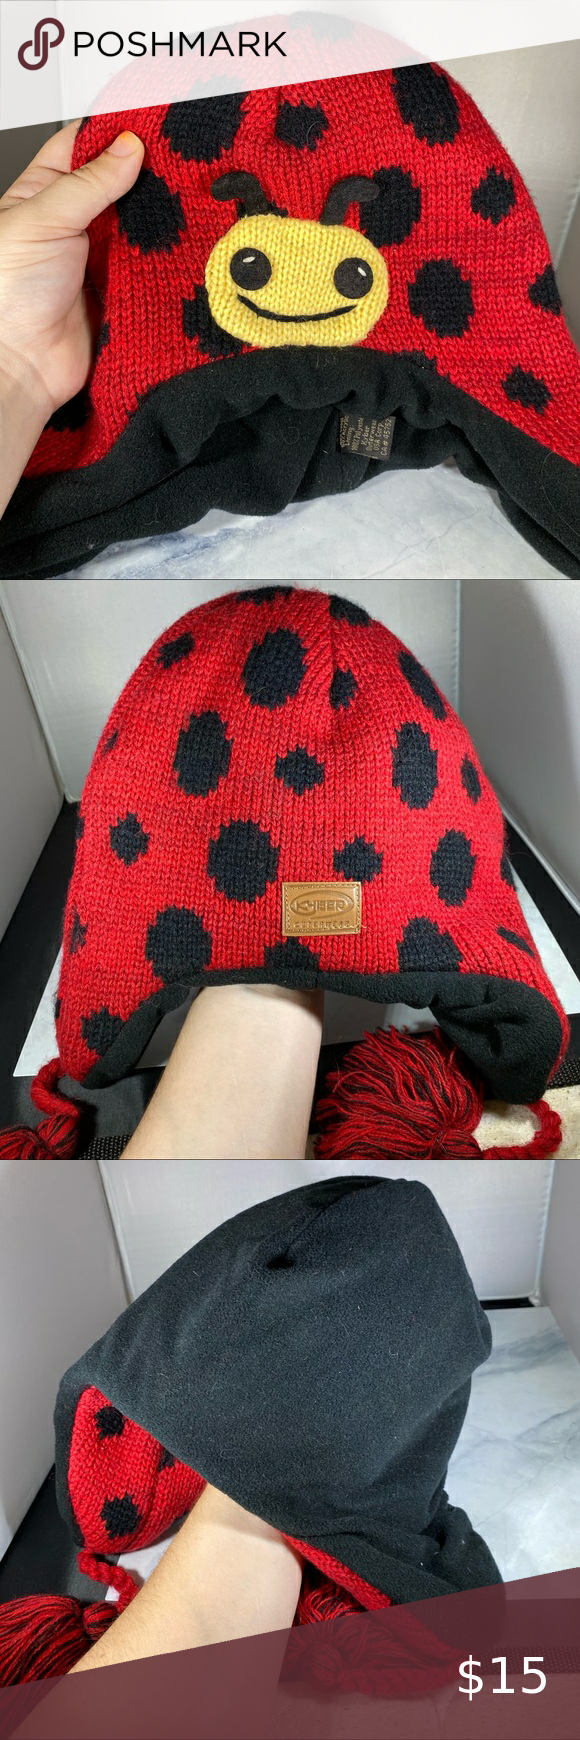 Kyber Outerwear Ladybug Hat Hats Outerwear Black And Red [ 1740 x 580 Pixel ]